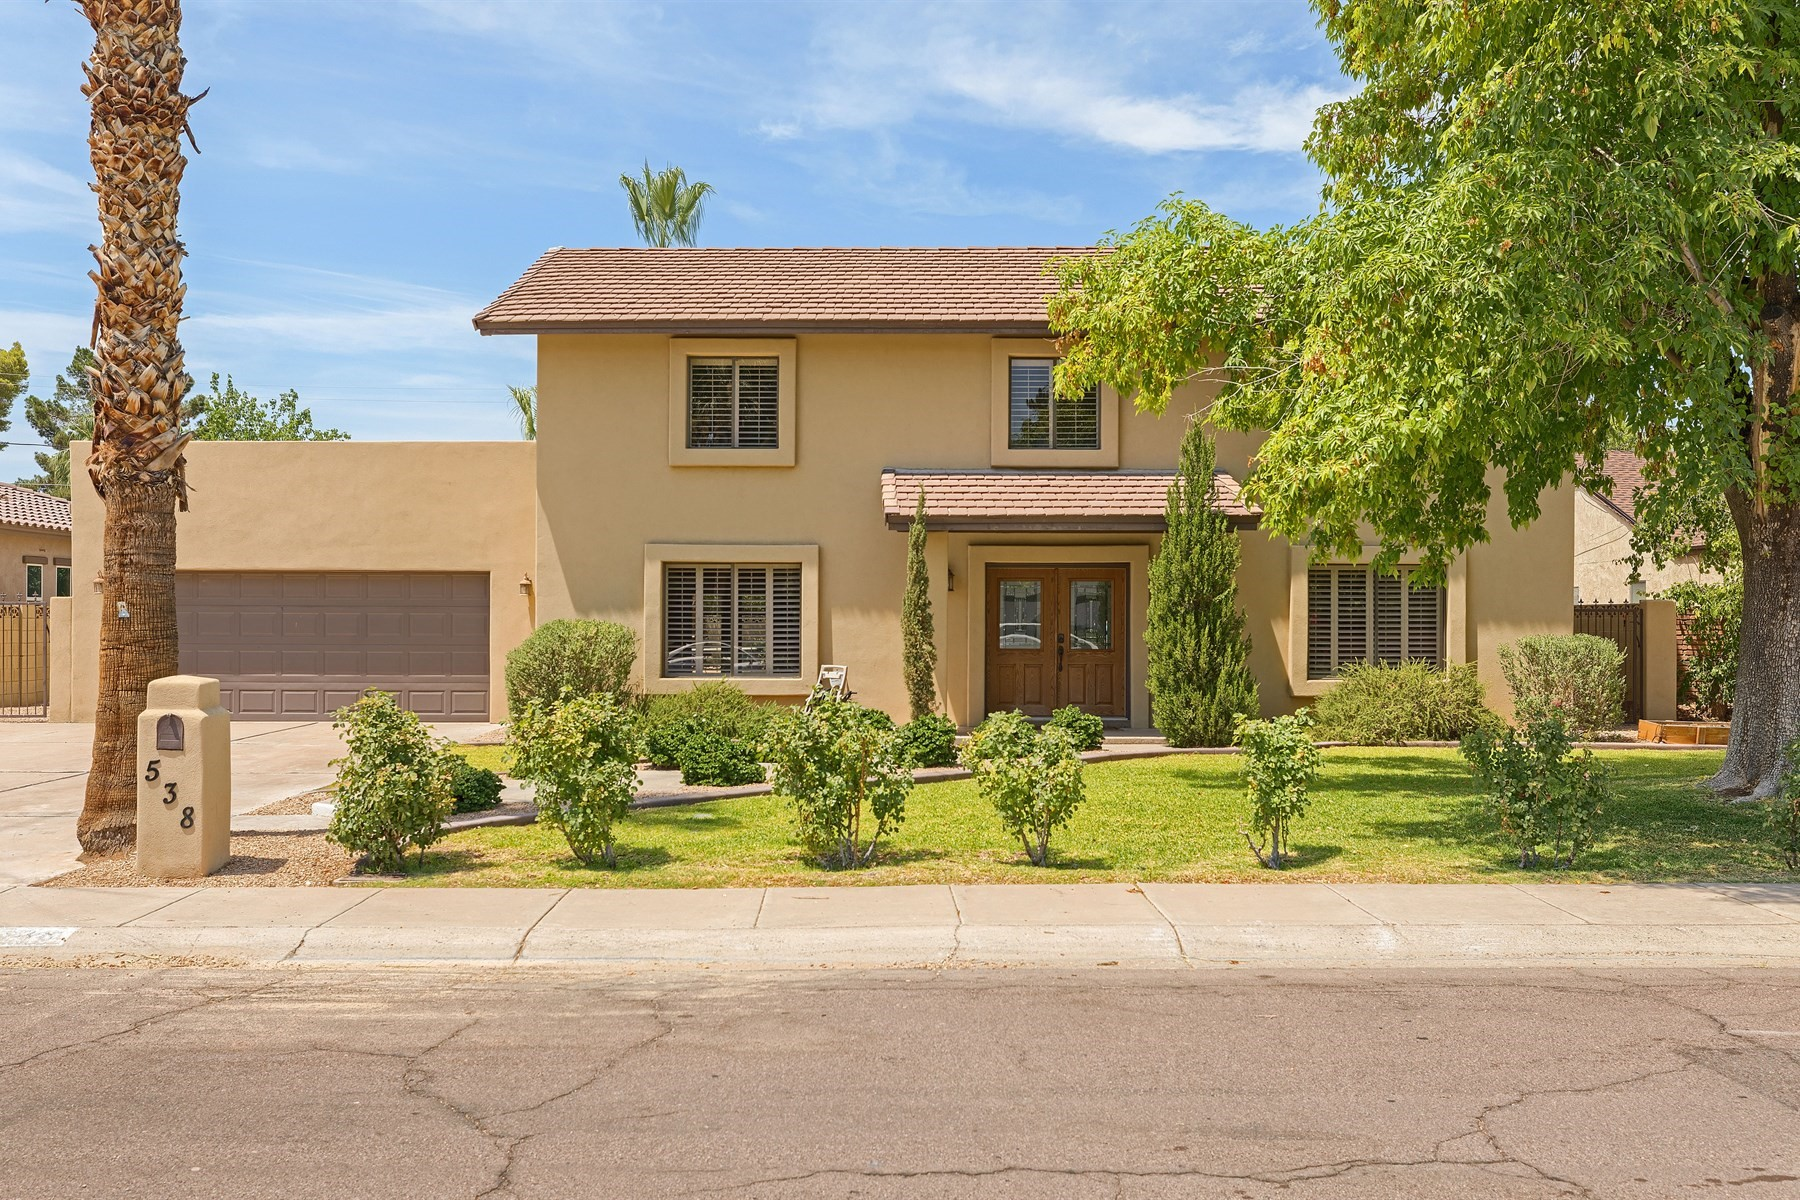 独户住宅 为 销售 在 Charming home in highly desired North Central Phoenix location 538 W Las Palmaritas Dr 菲尼克斯(凤凰城), 亚利桑那州, 85021 美国